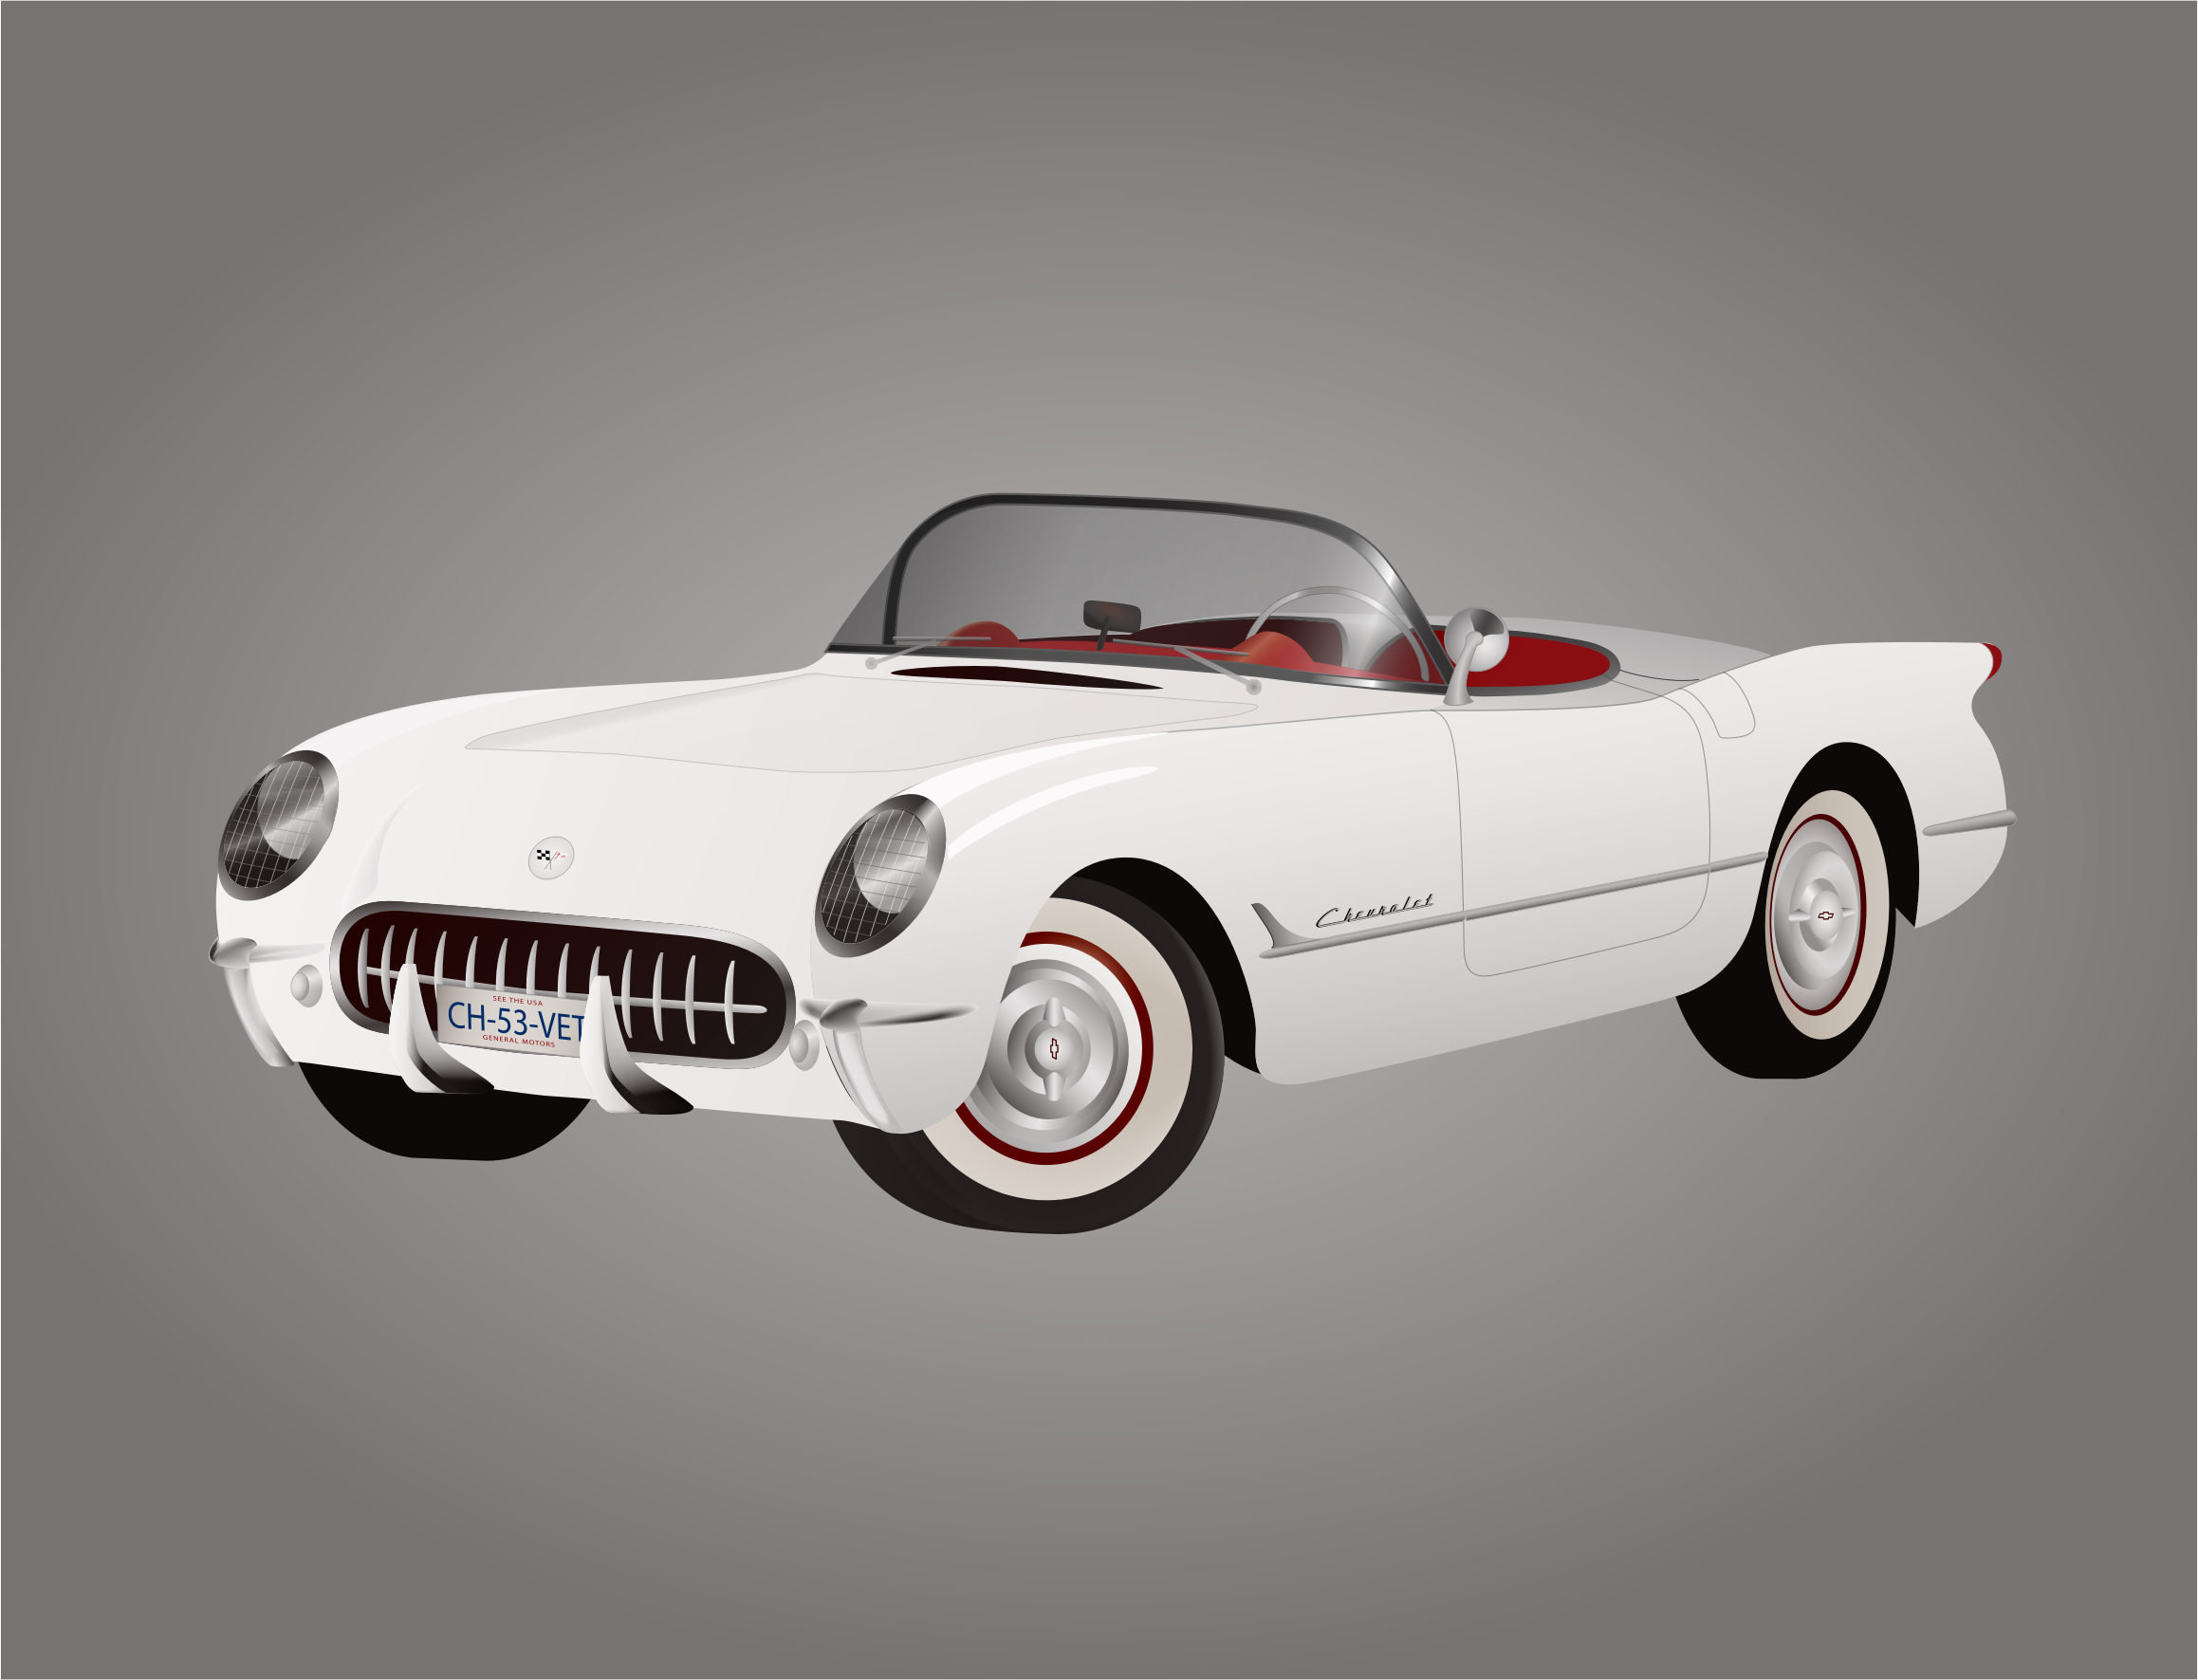 1953 Corvette by bnsonger47